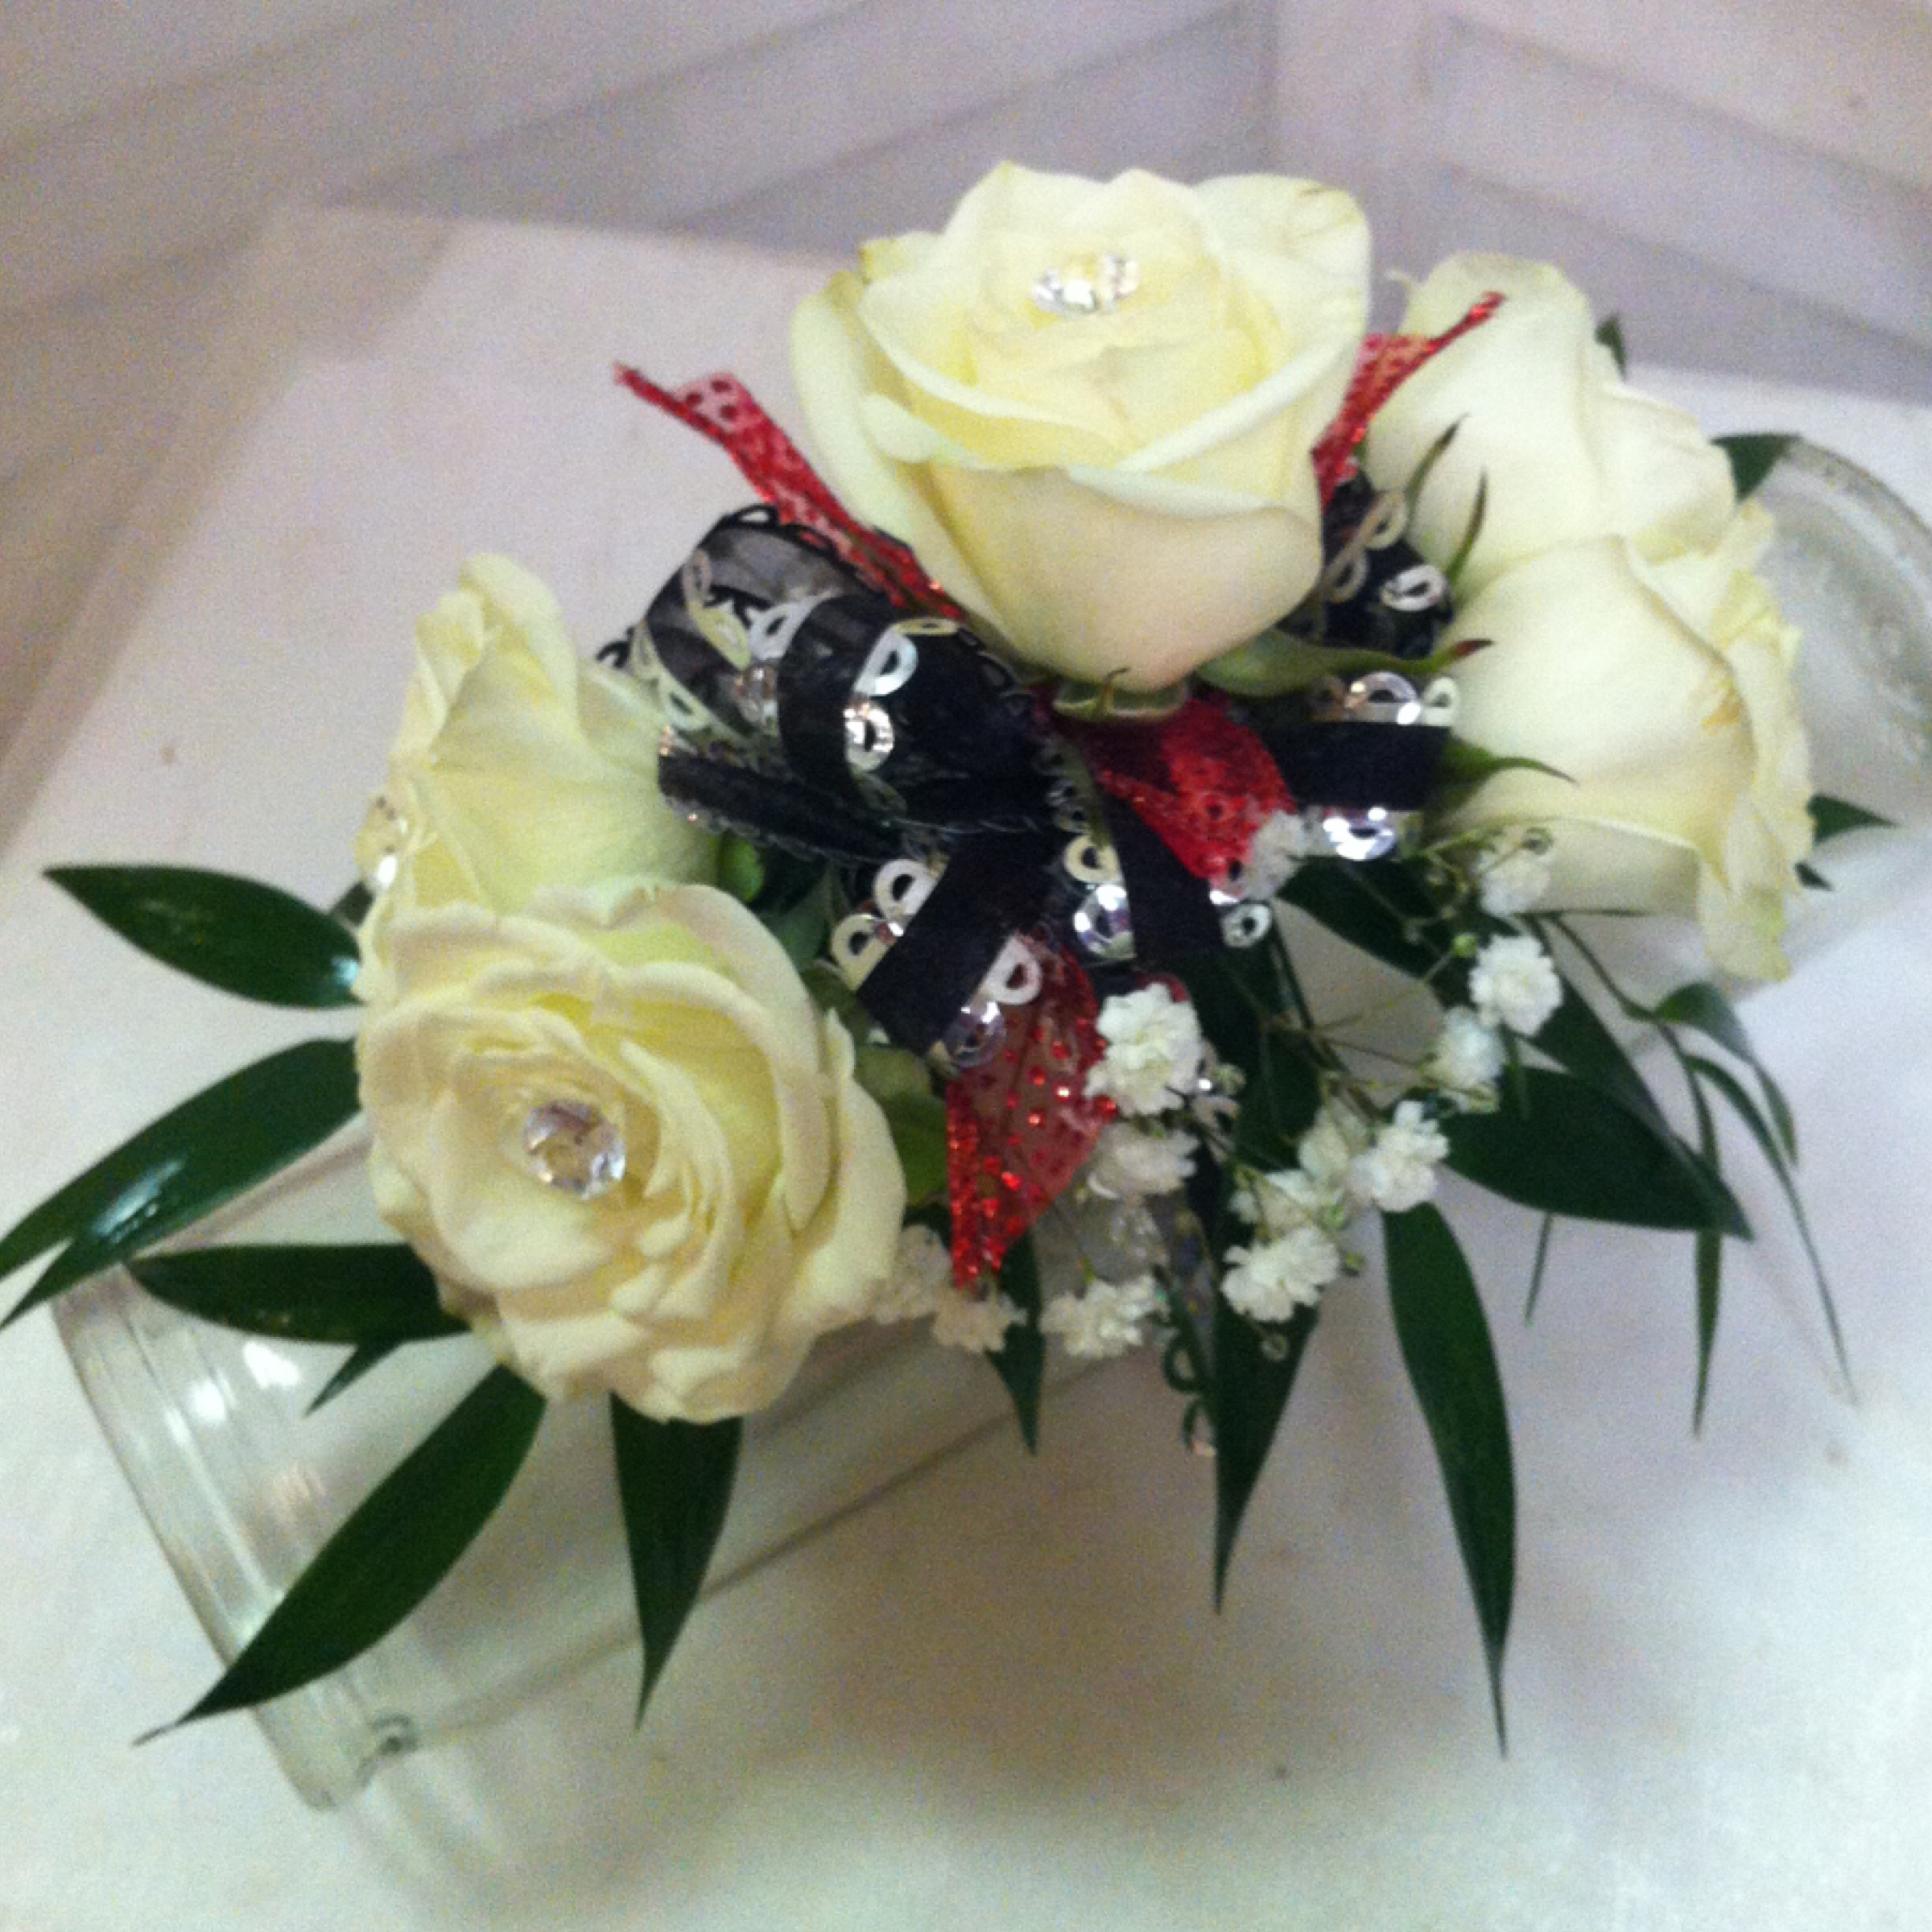 Standard Corsage (25) with Upgraded Bow (2) $27